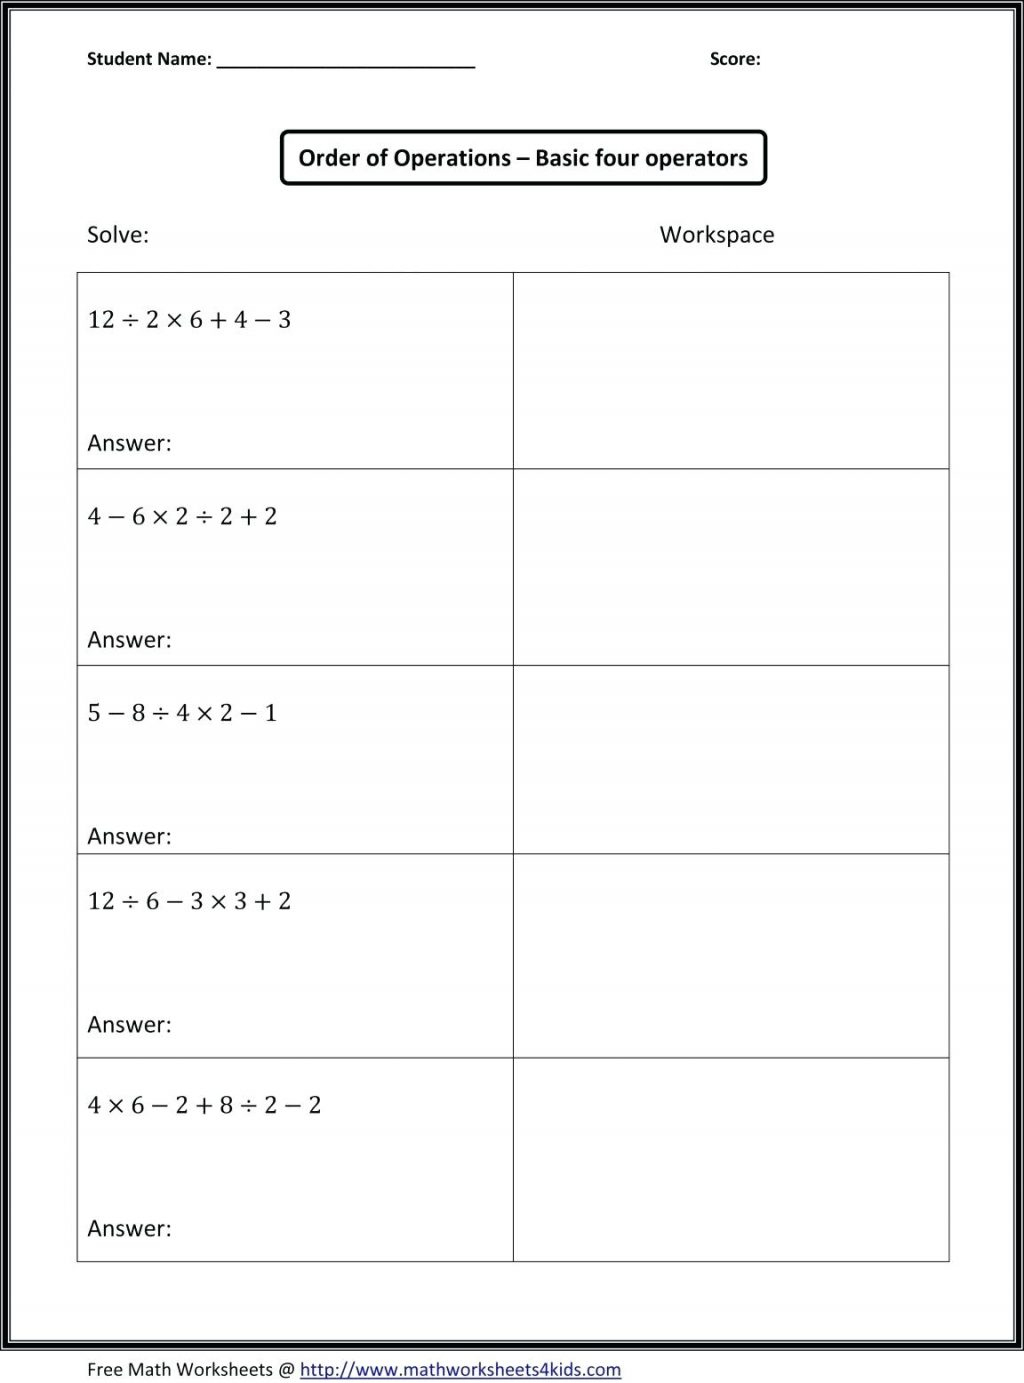 24 Printable Order Of Operations Worksheets To Master